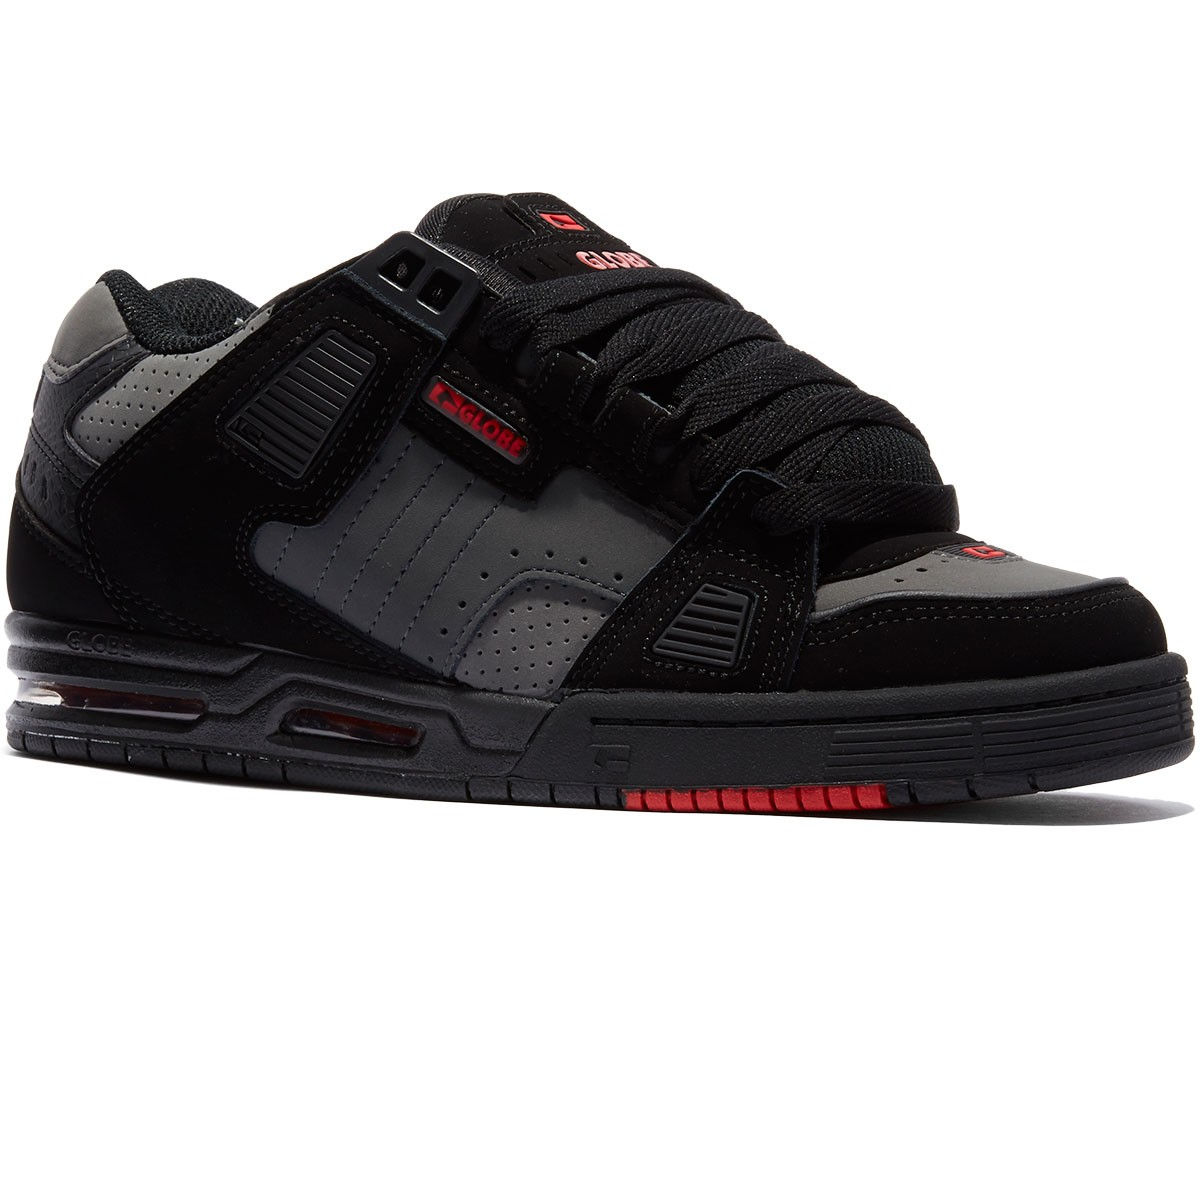 Globe Sabre Shoes - Black/Shadow/Red - 8.0